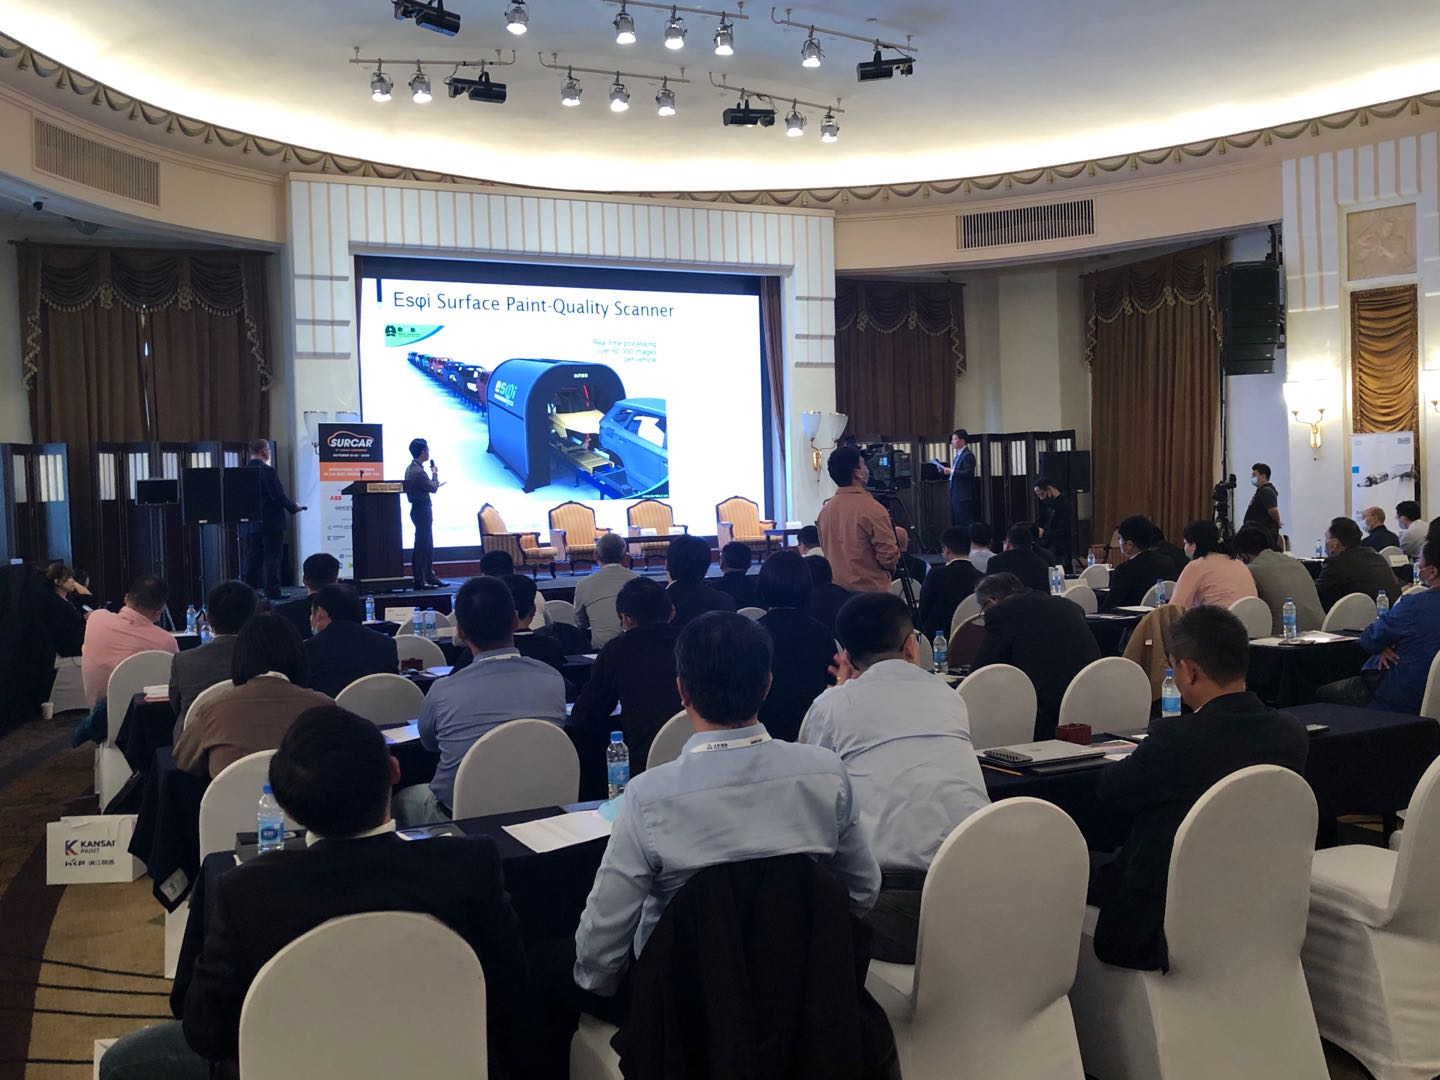 Presentation of Eines Paint Surface Scanner in SURCAR Shangai 2020